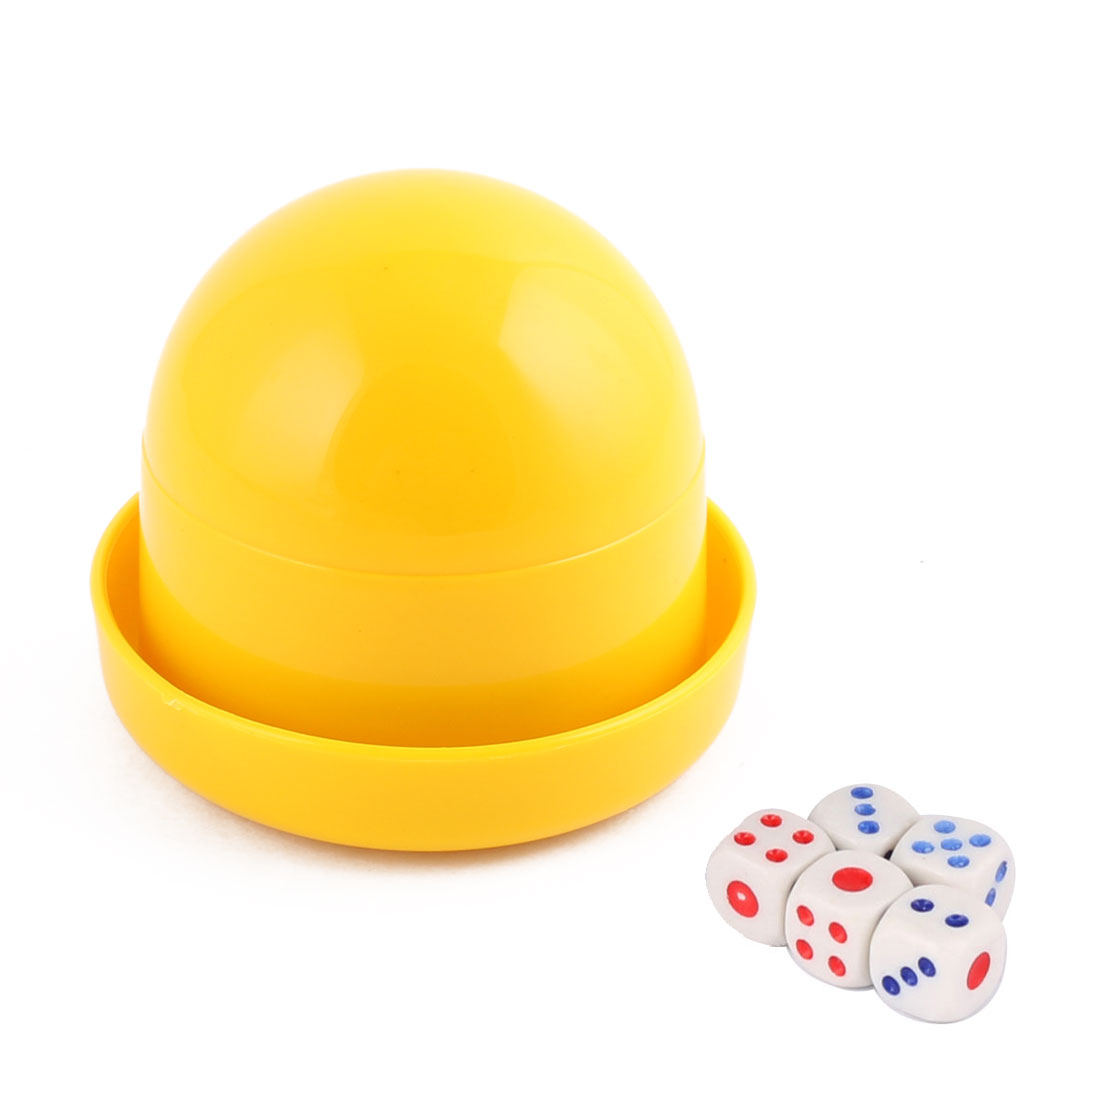 Party Casino Games Plastic Cylindrical Hand Shaker Cup Entertainment Dice Yellow